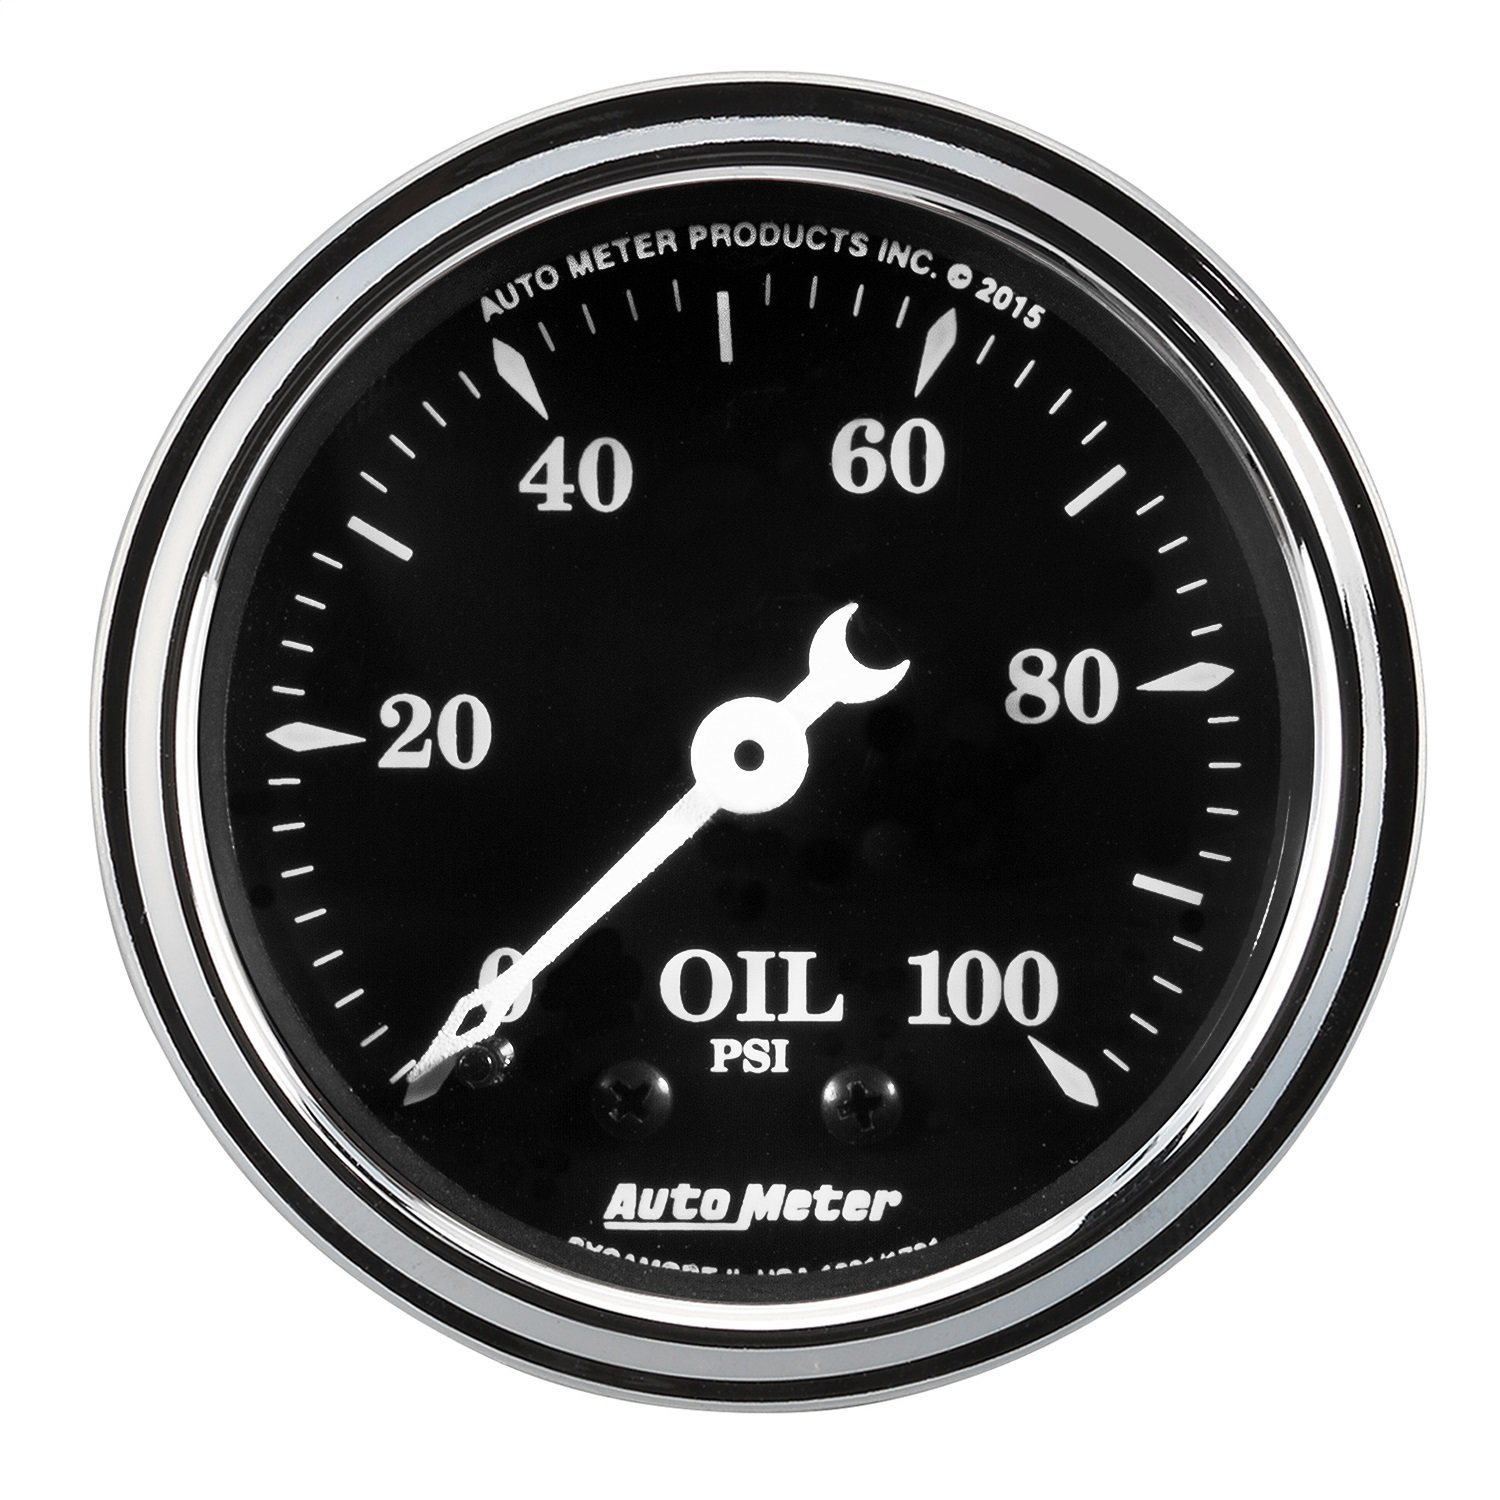 AutoMeter 1721 Old Tyme Black Mechanical Oil Pressure Gauge 2-1/16 in. Black Dial Face White Pointer White Incandescent Lighting Mechanical 0-100 PSI Old Tyme Black Mechanical Oil Pressure Gauge Auto Meter